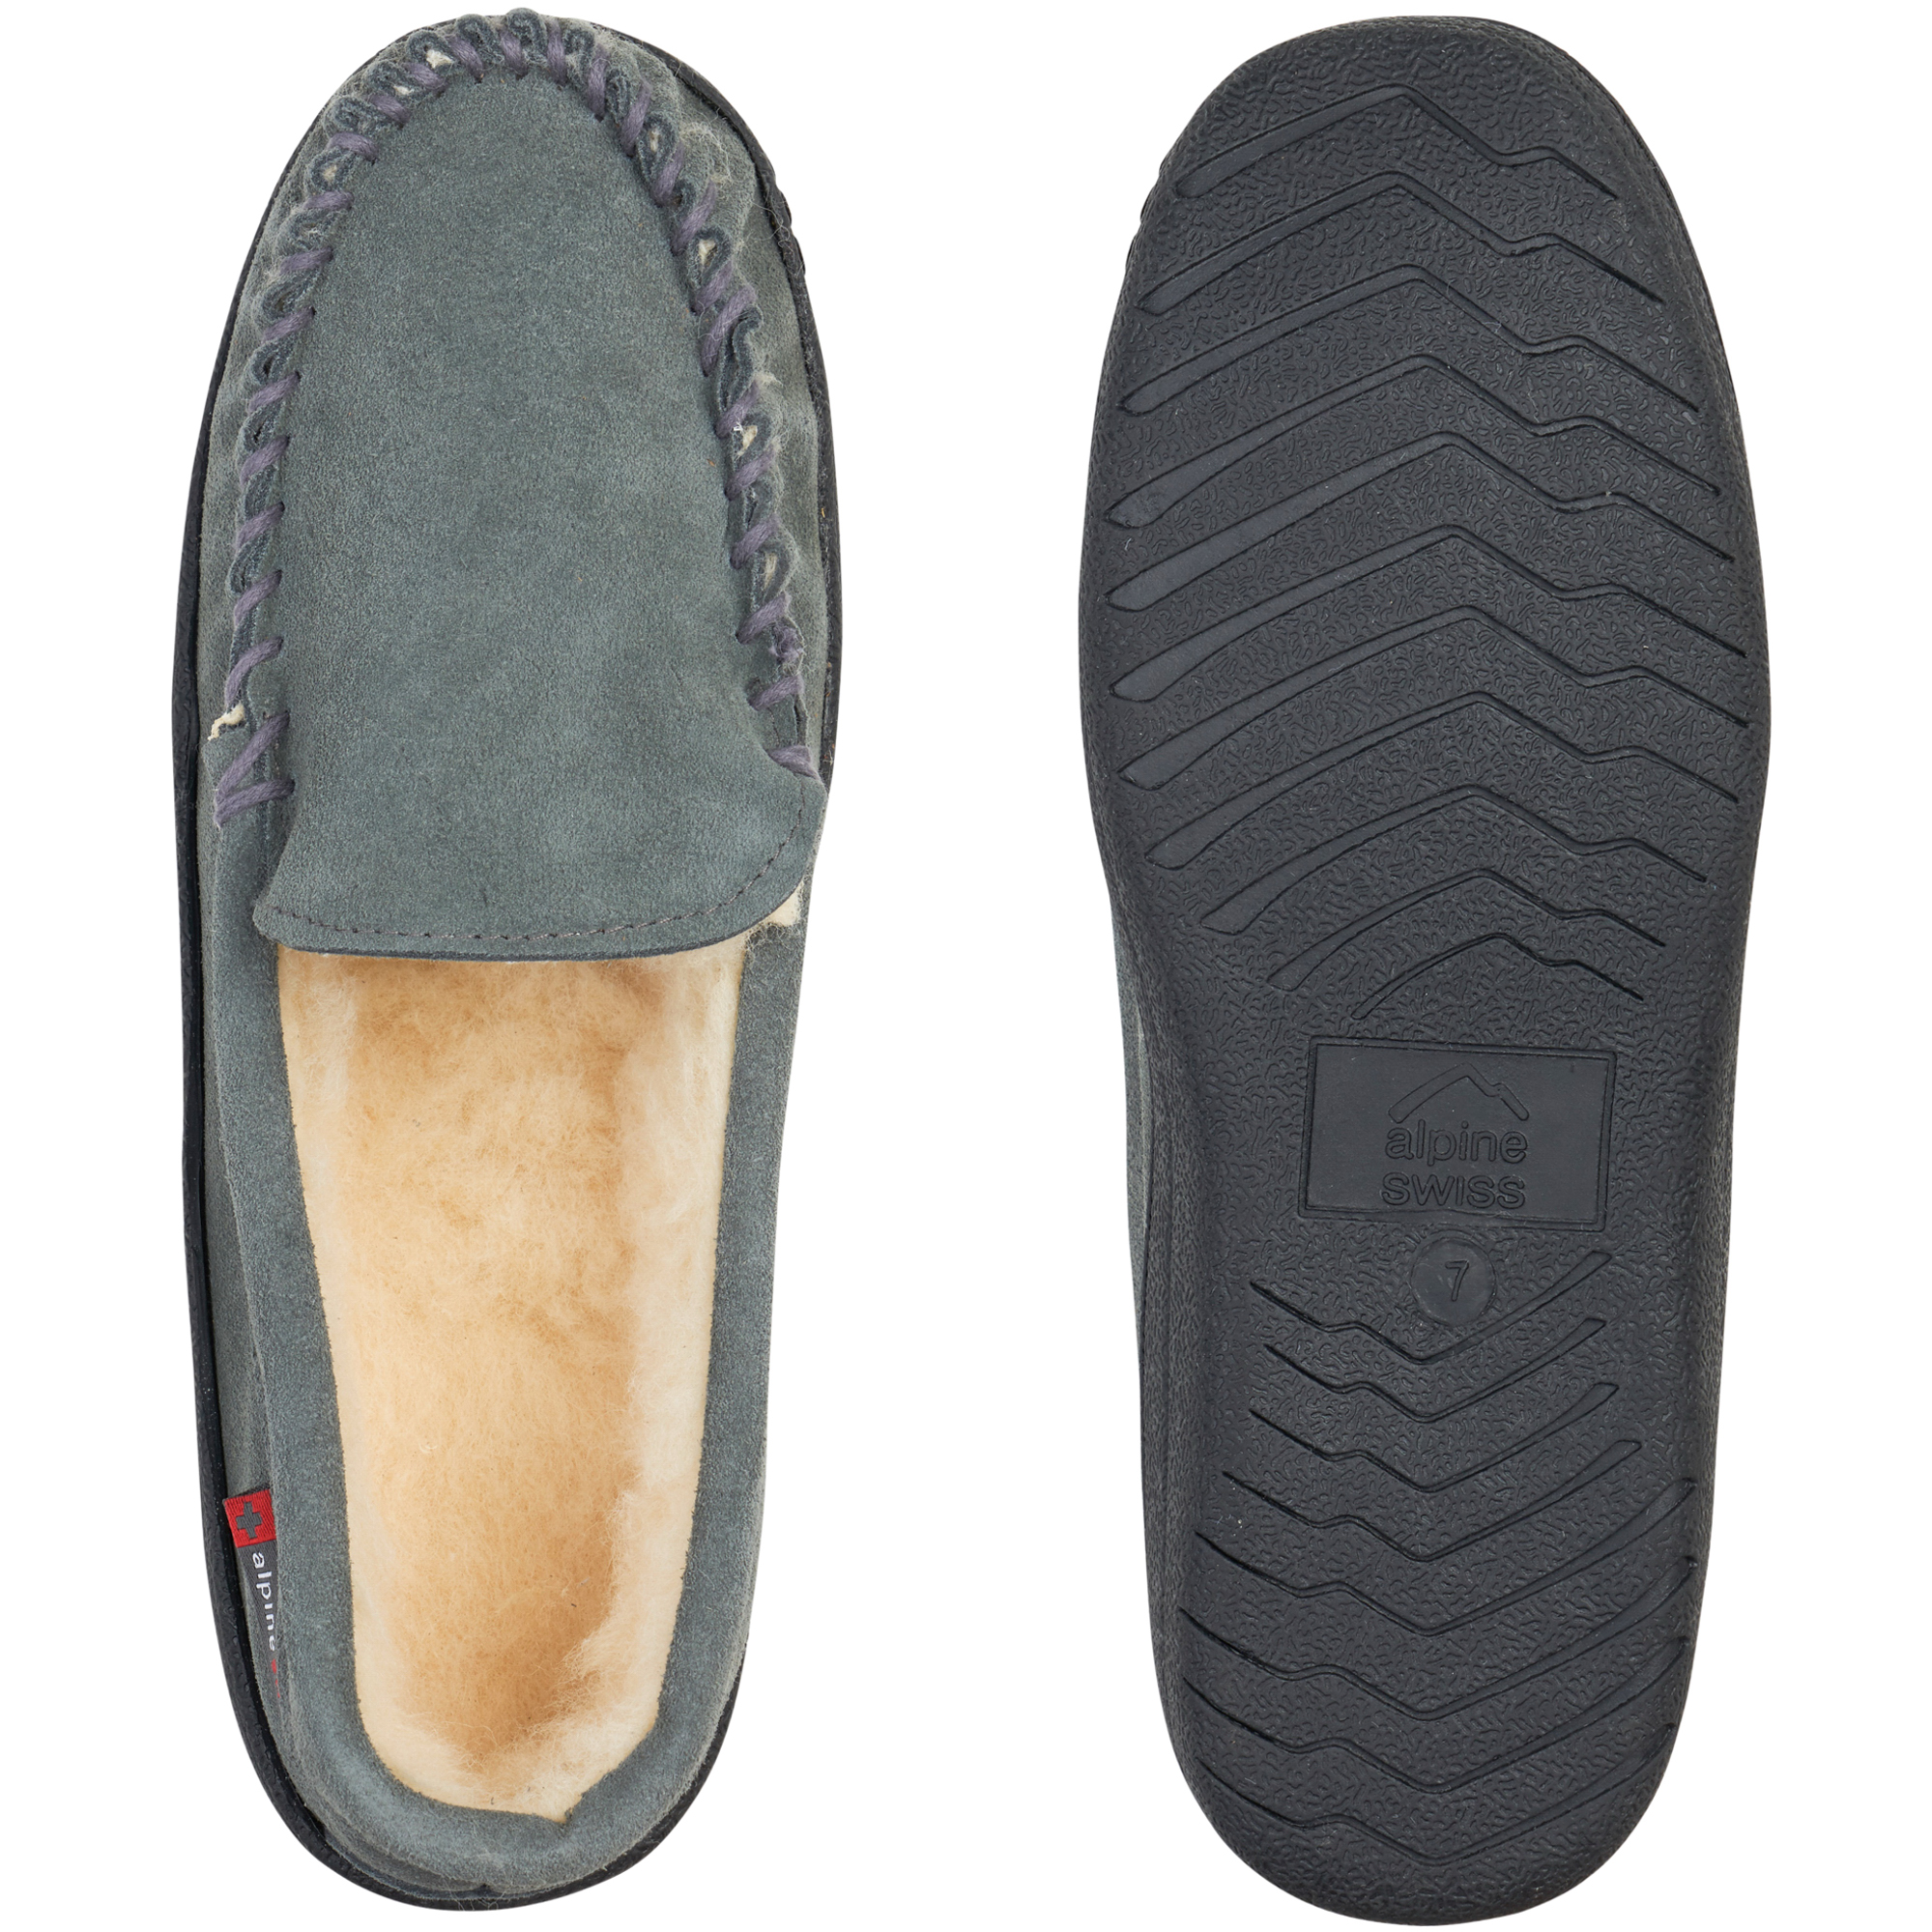 Alpine-Swiss-Yukon-Mens-Suede-Shearling-Moccasin-Slippers-Moc-Toe-Slip-On-Shoes thumbnail 31